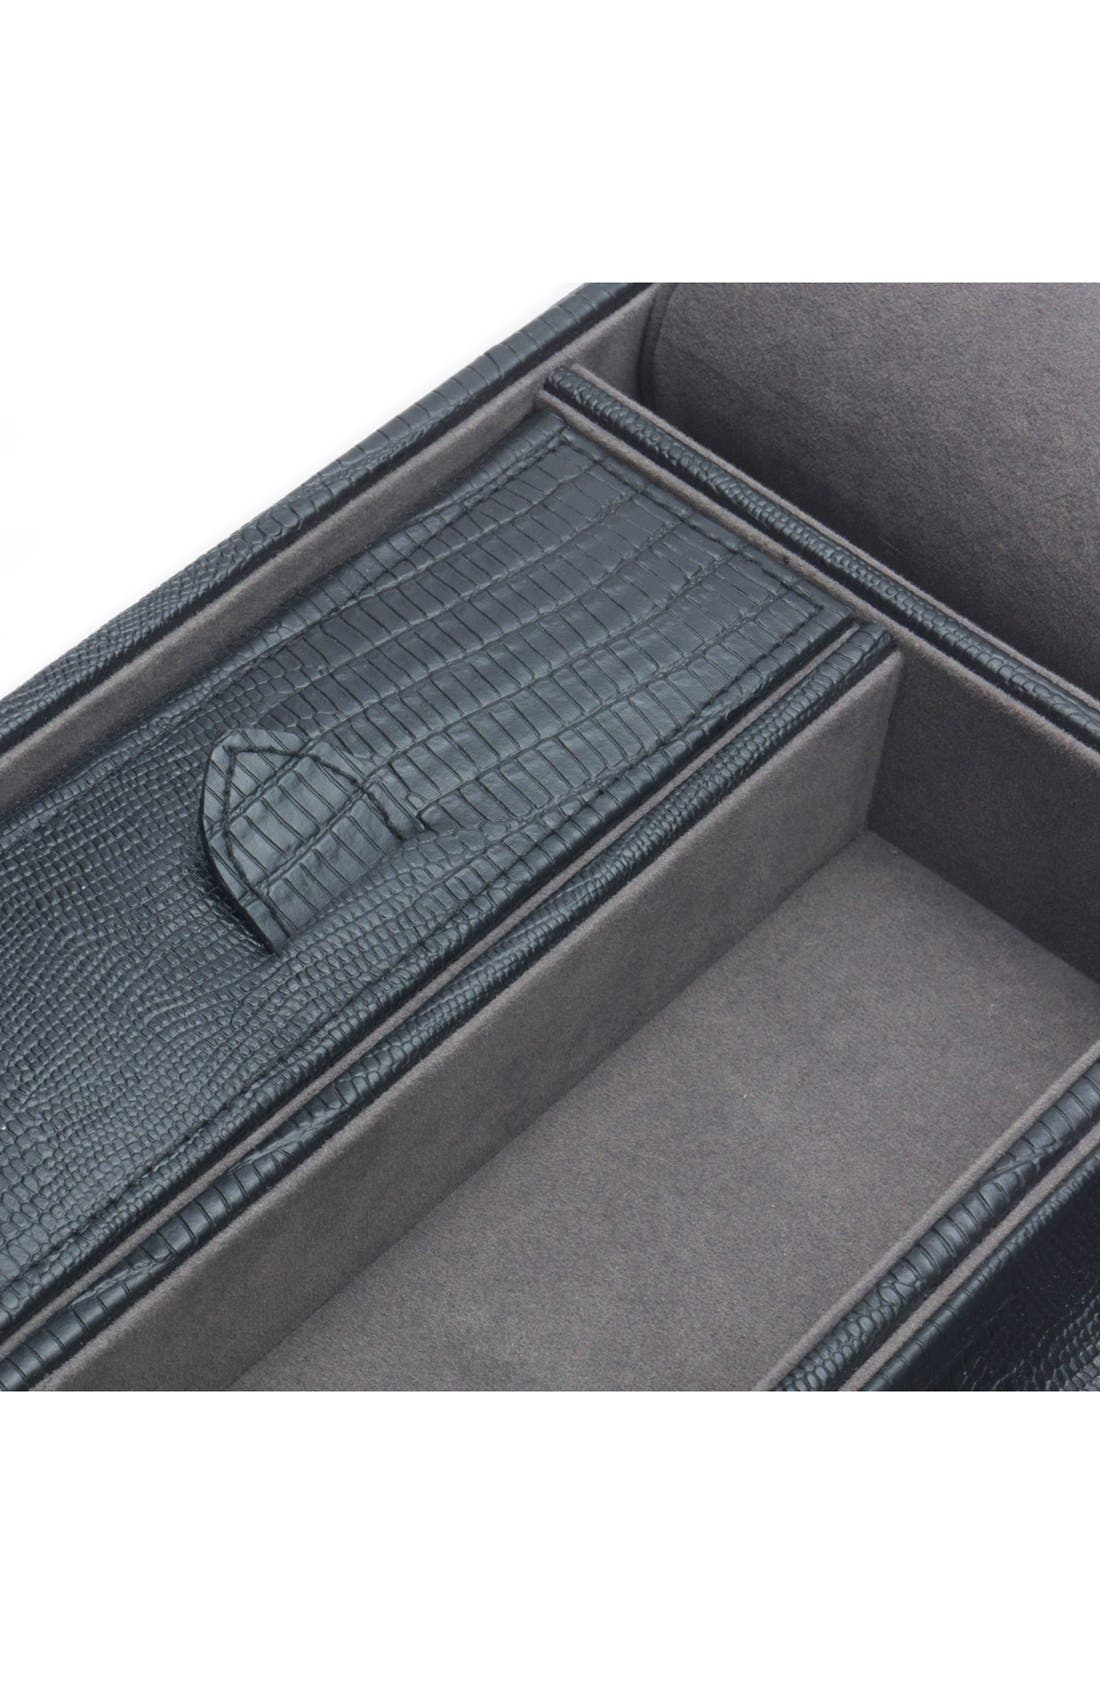 Blake Valet Tray,                             Alternate thumbnail 4, color,                             001